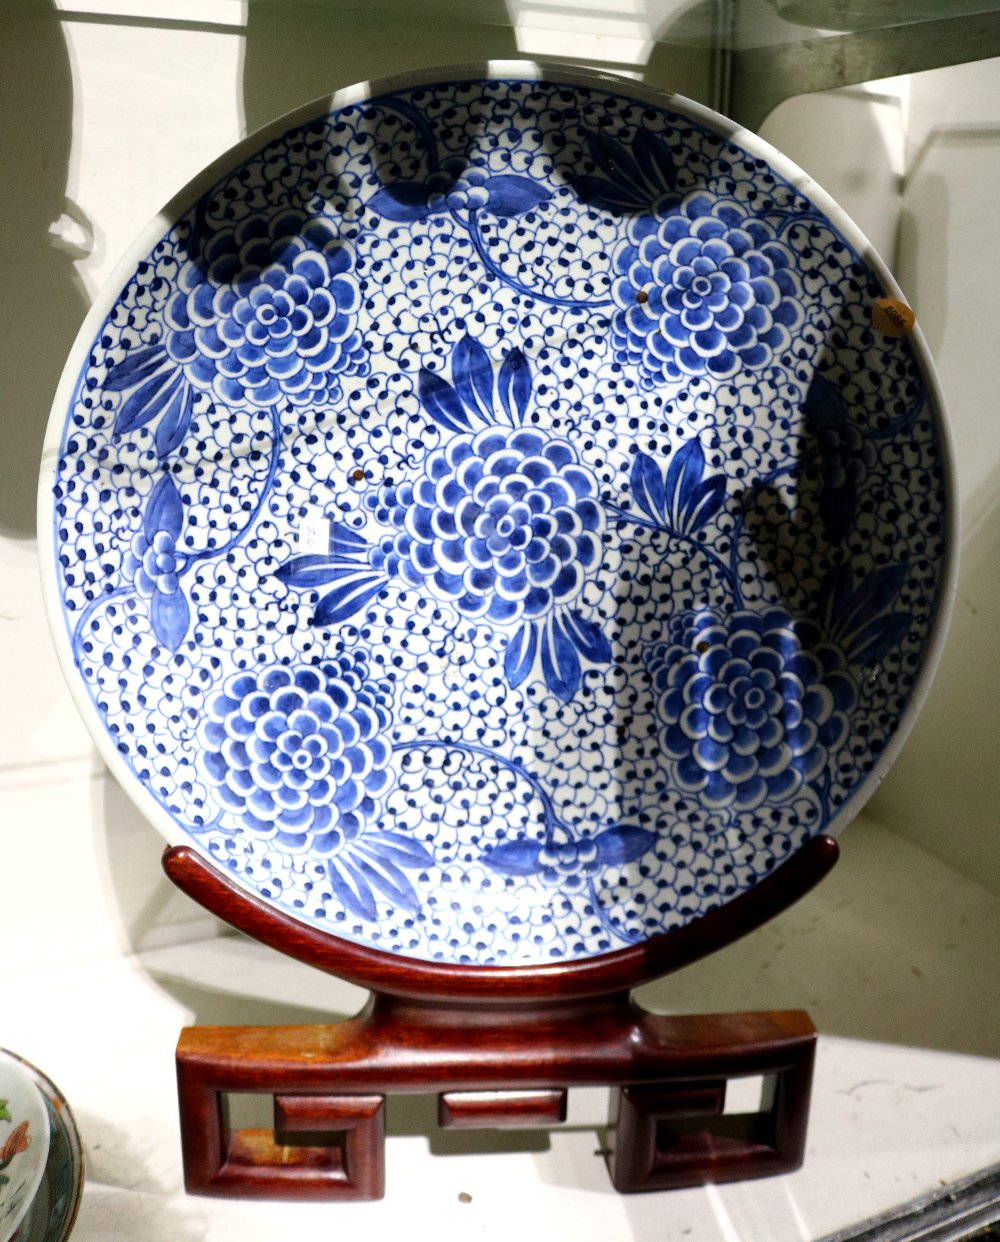 Lot 5085 - Chinese underglaze blue porcelain charger, featuring tendrils issuing large blossoms on a dense